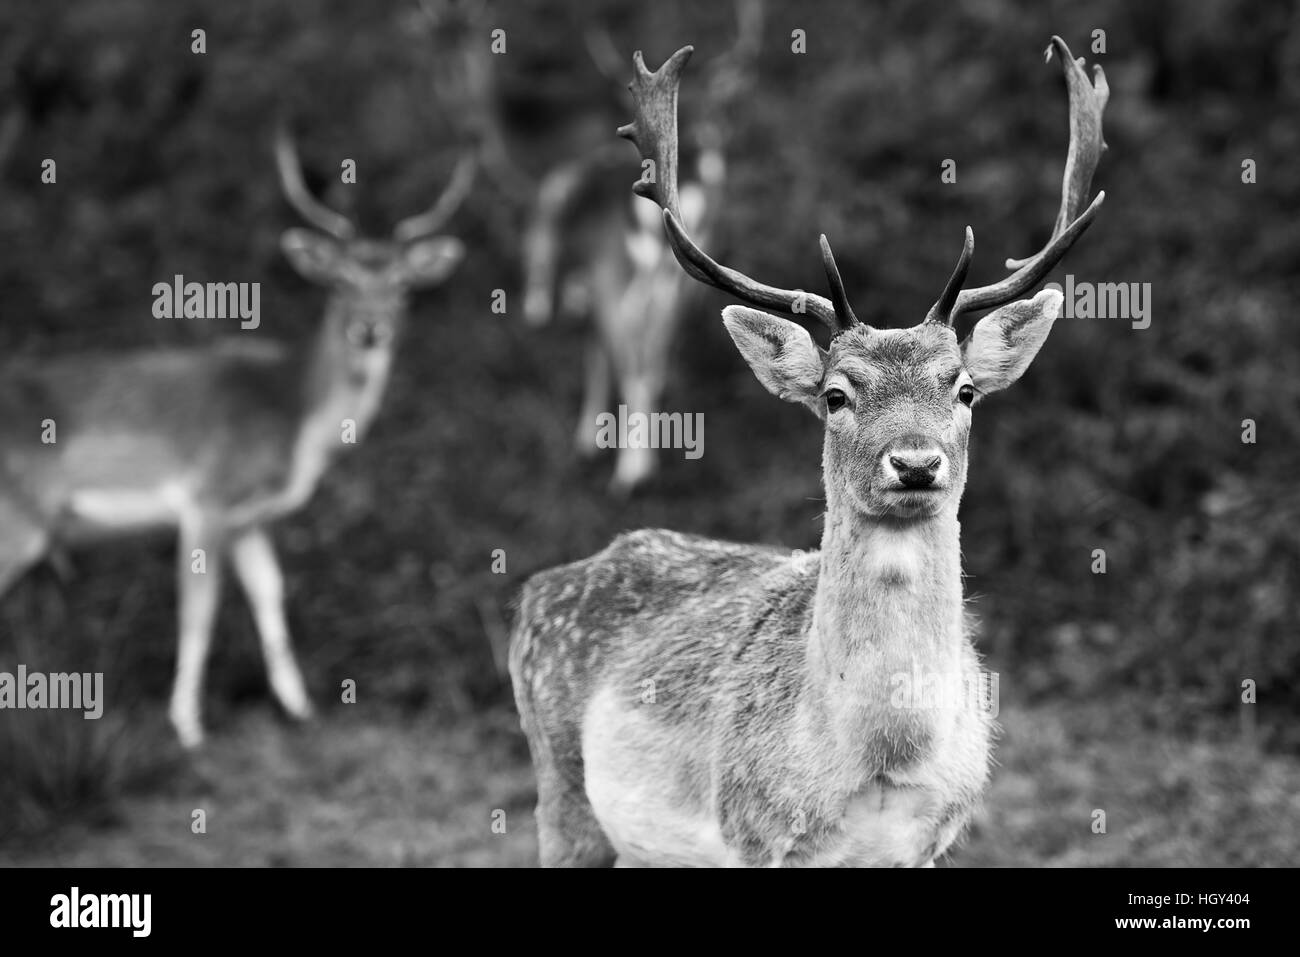 Deer antlers black and white stock photos deer antlers black and